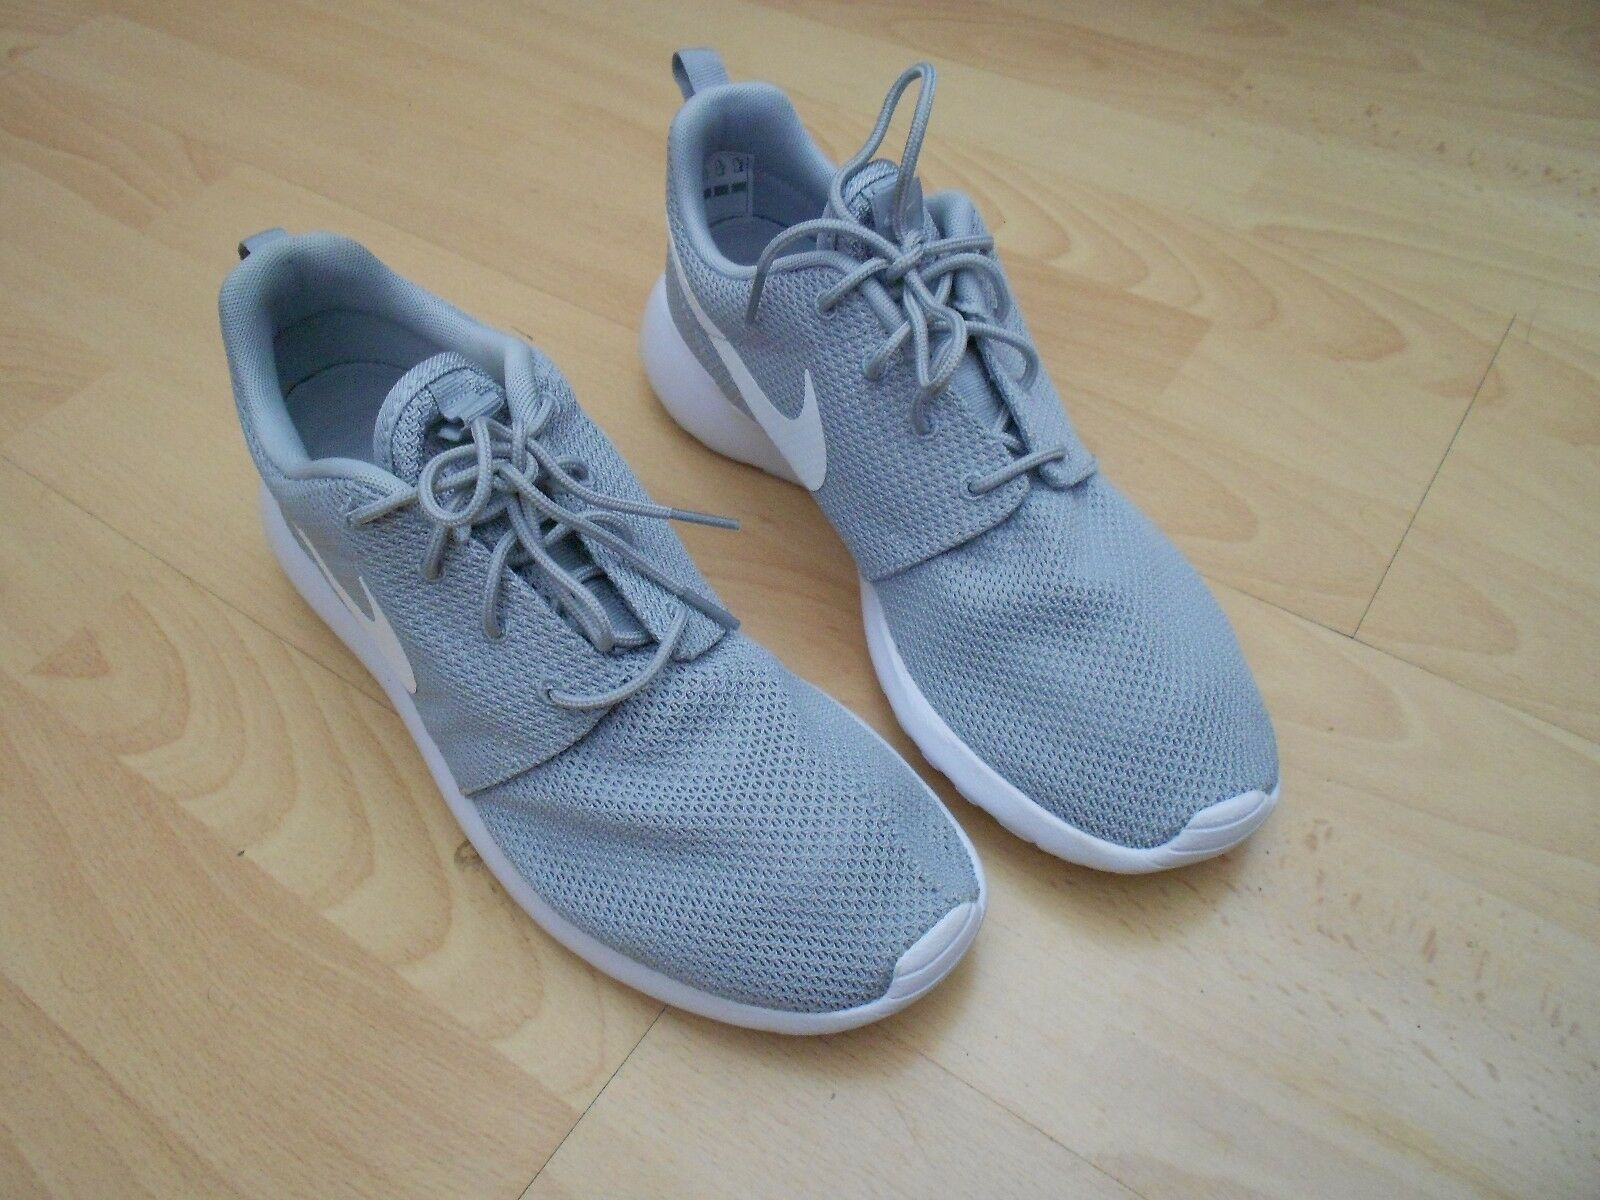 NIKE ROSHE RUN TRAINERS UK SIZE 9 - GREY  NEW WITH FAULT ON RIGHT TRAINER